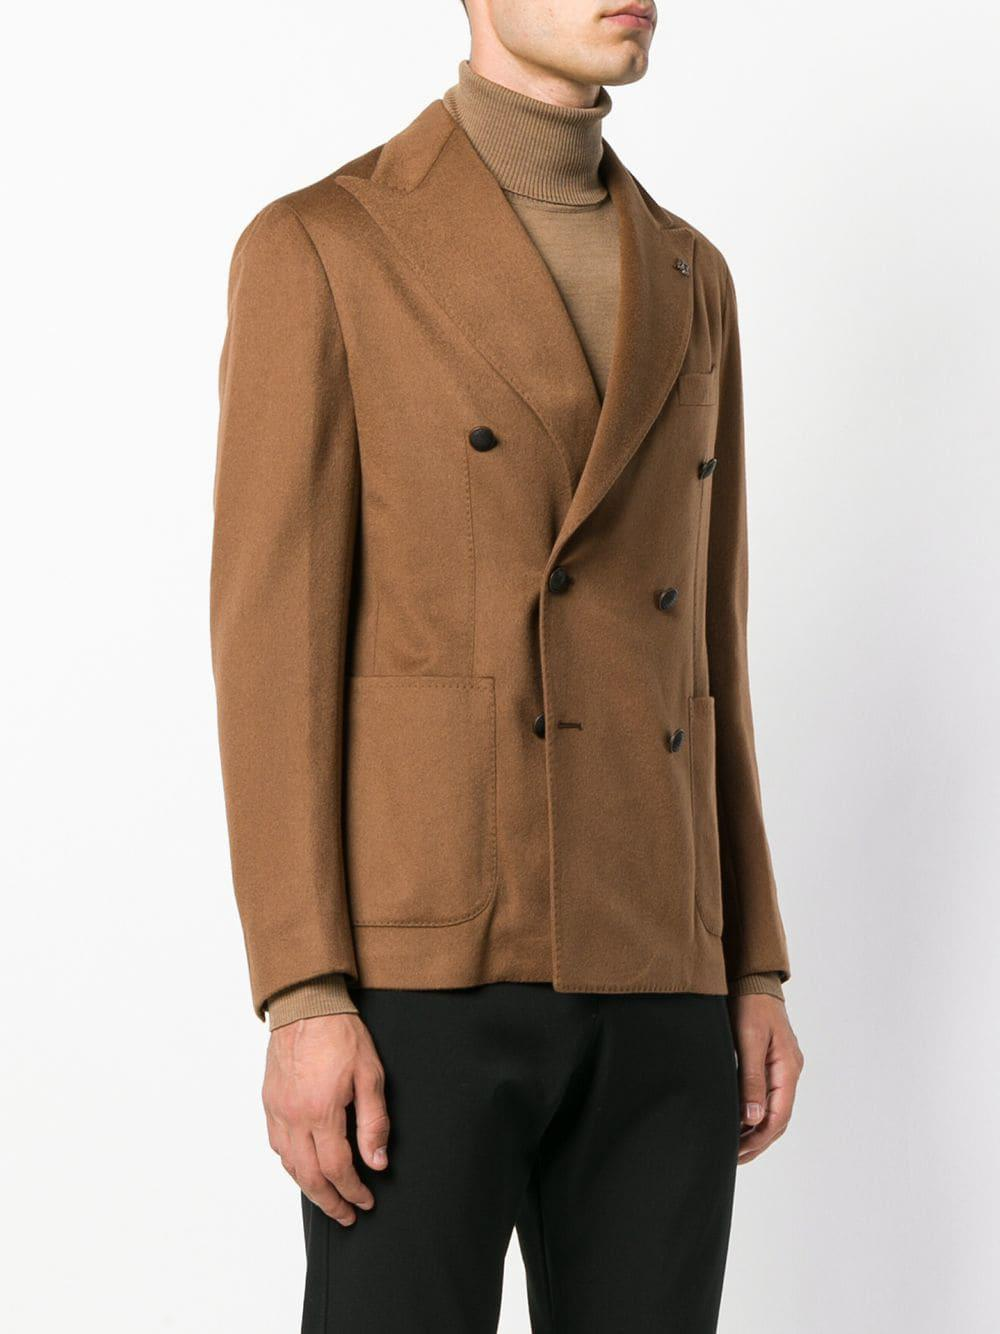 Tagliatore Double-breasted Jacket in Brown for Men